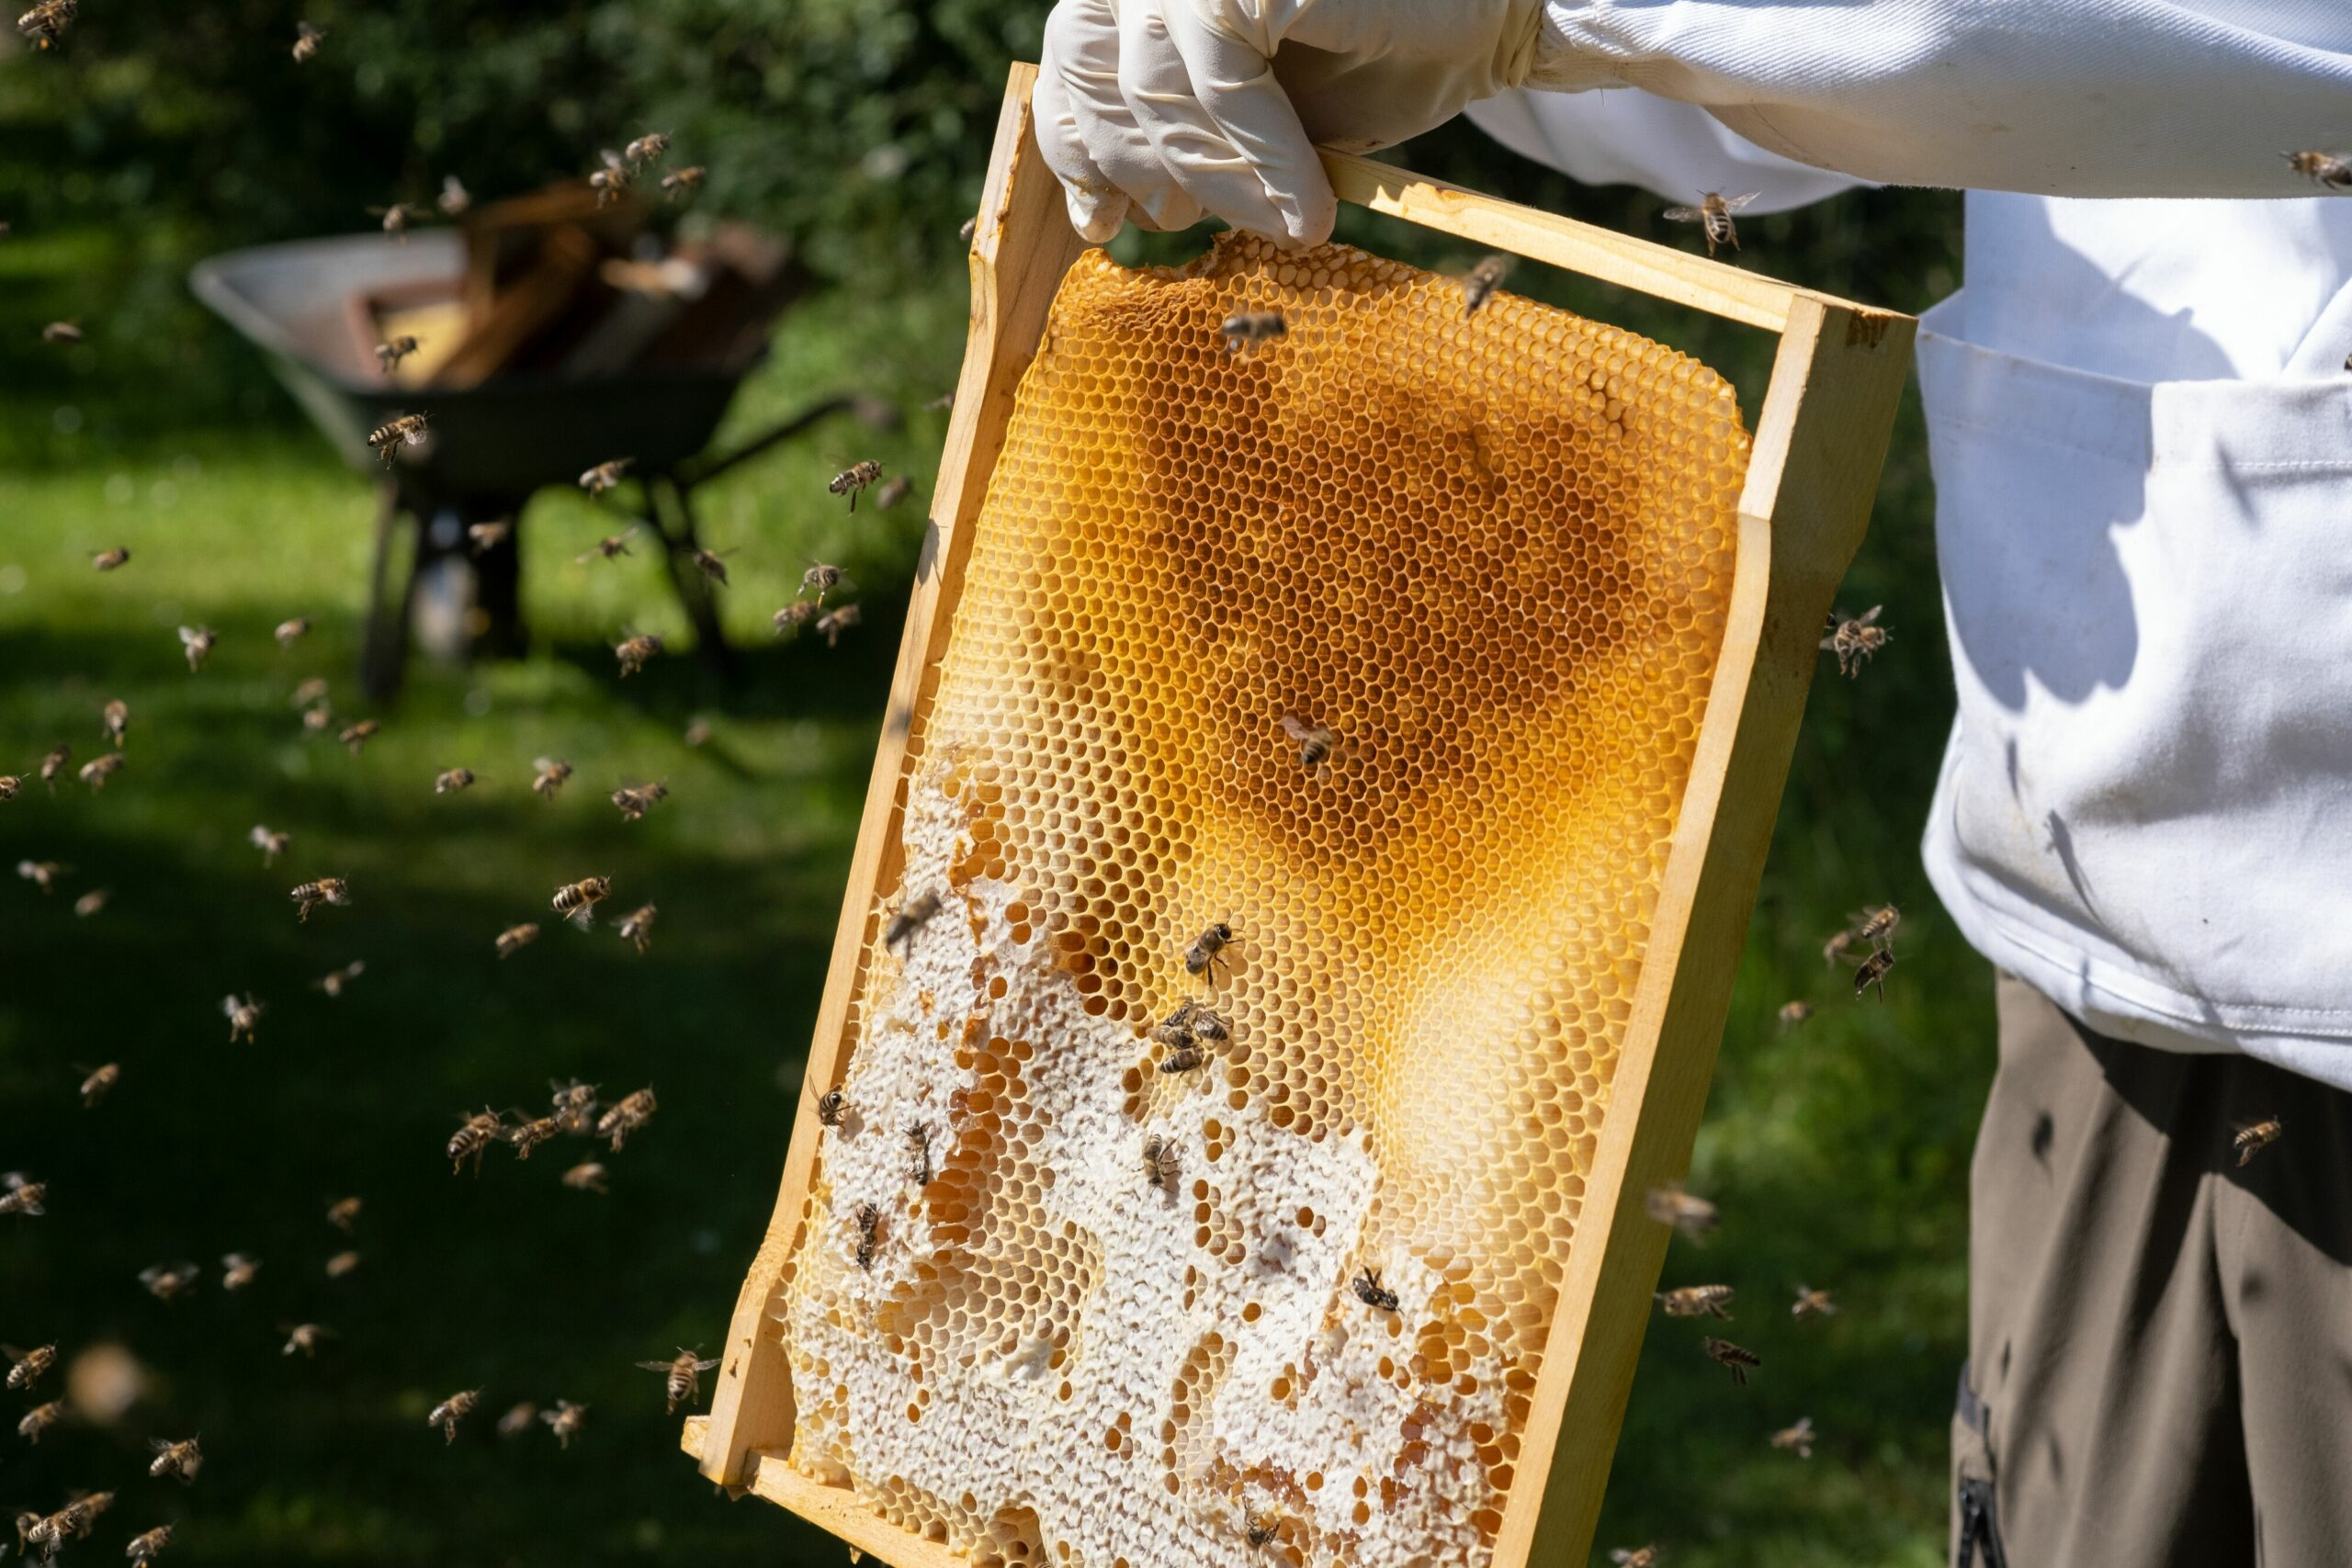 bees wax from German and Austrian organi apiculture safeguars another source of income for organic beekeepers